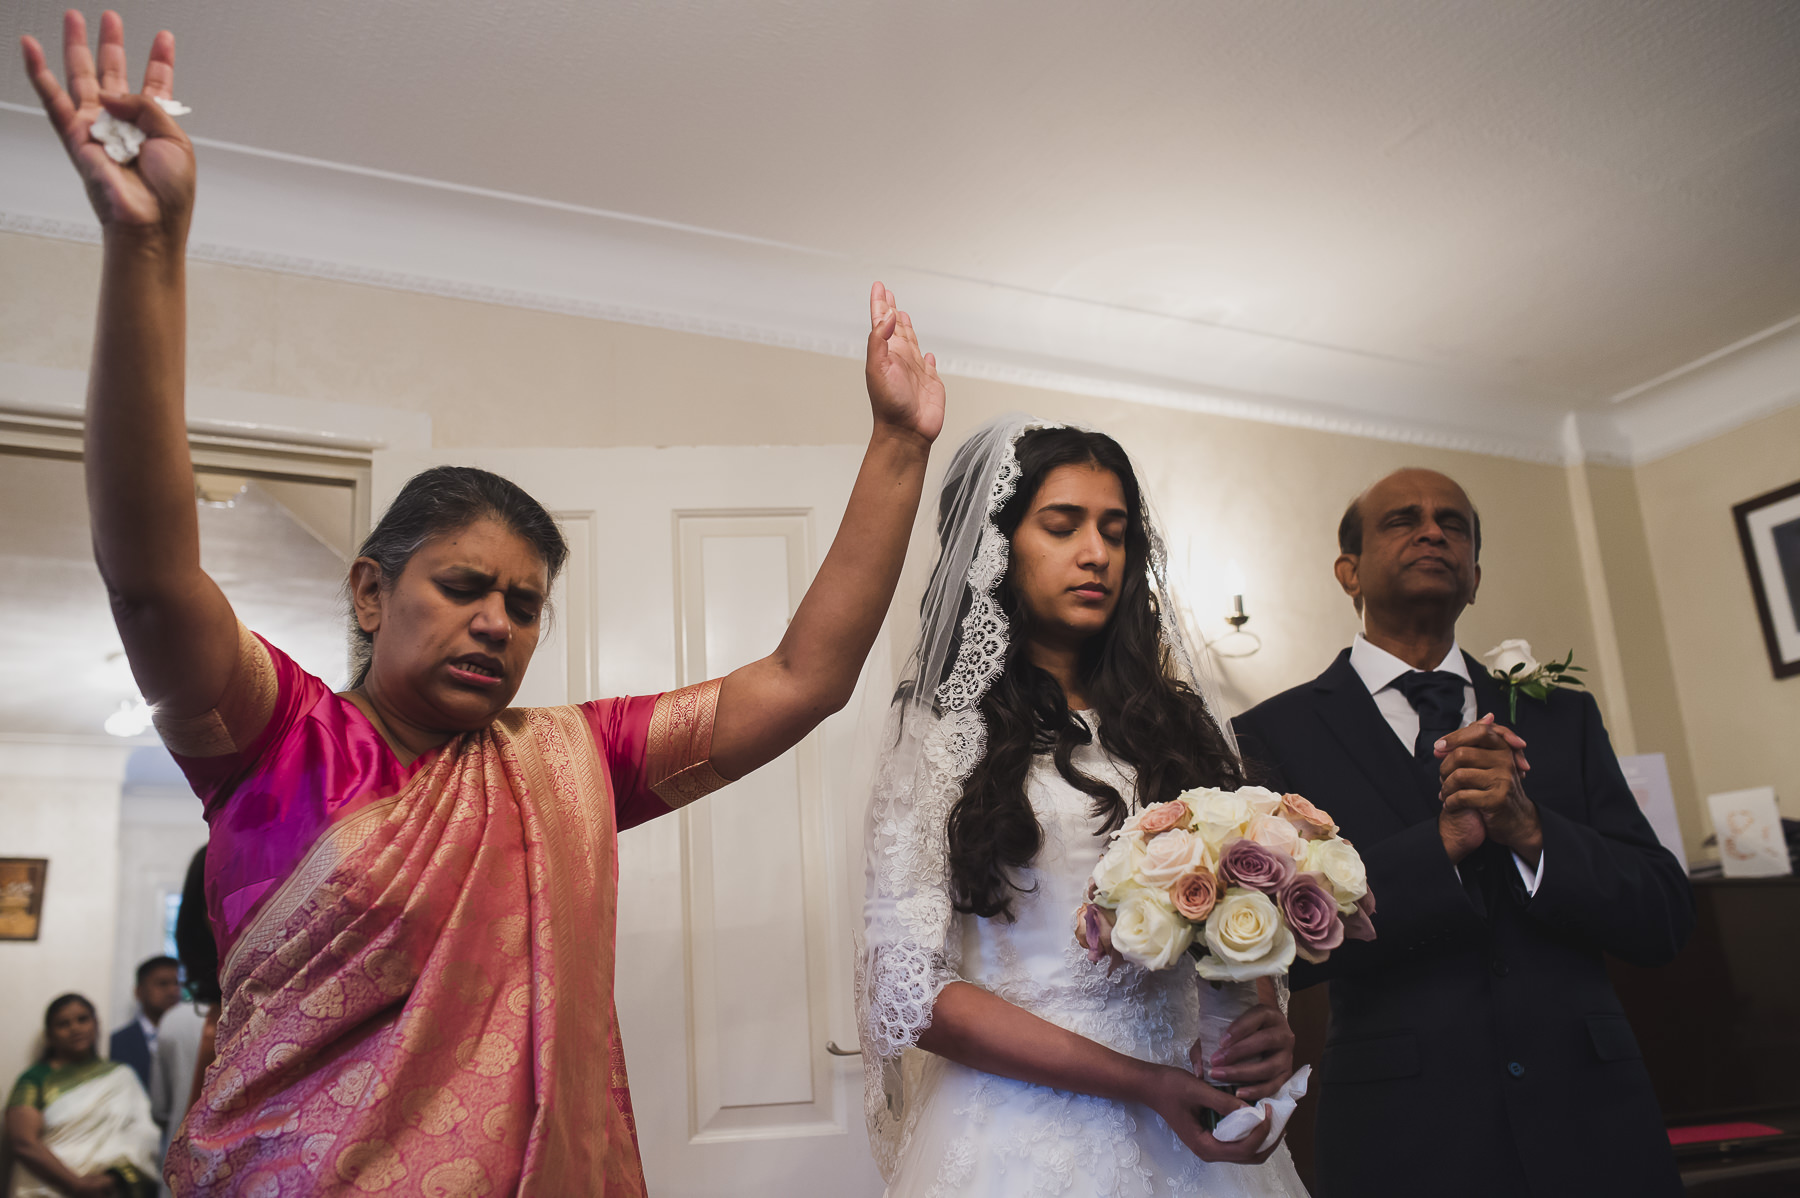 Morning Prayers at a Christian Wedding in Mayfair